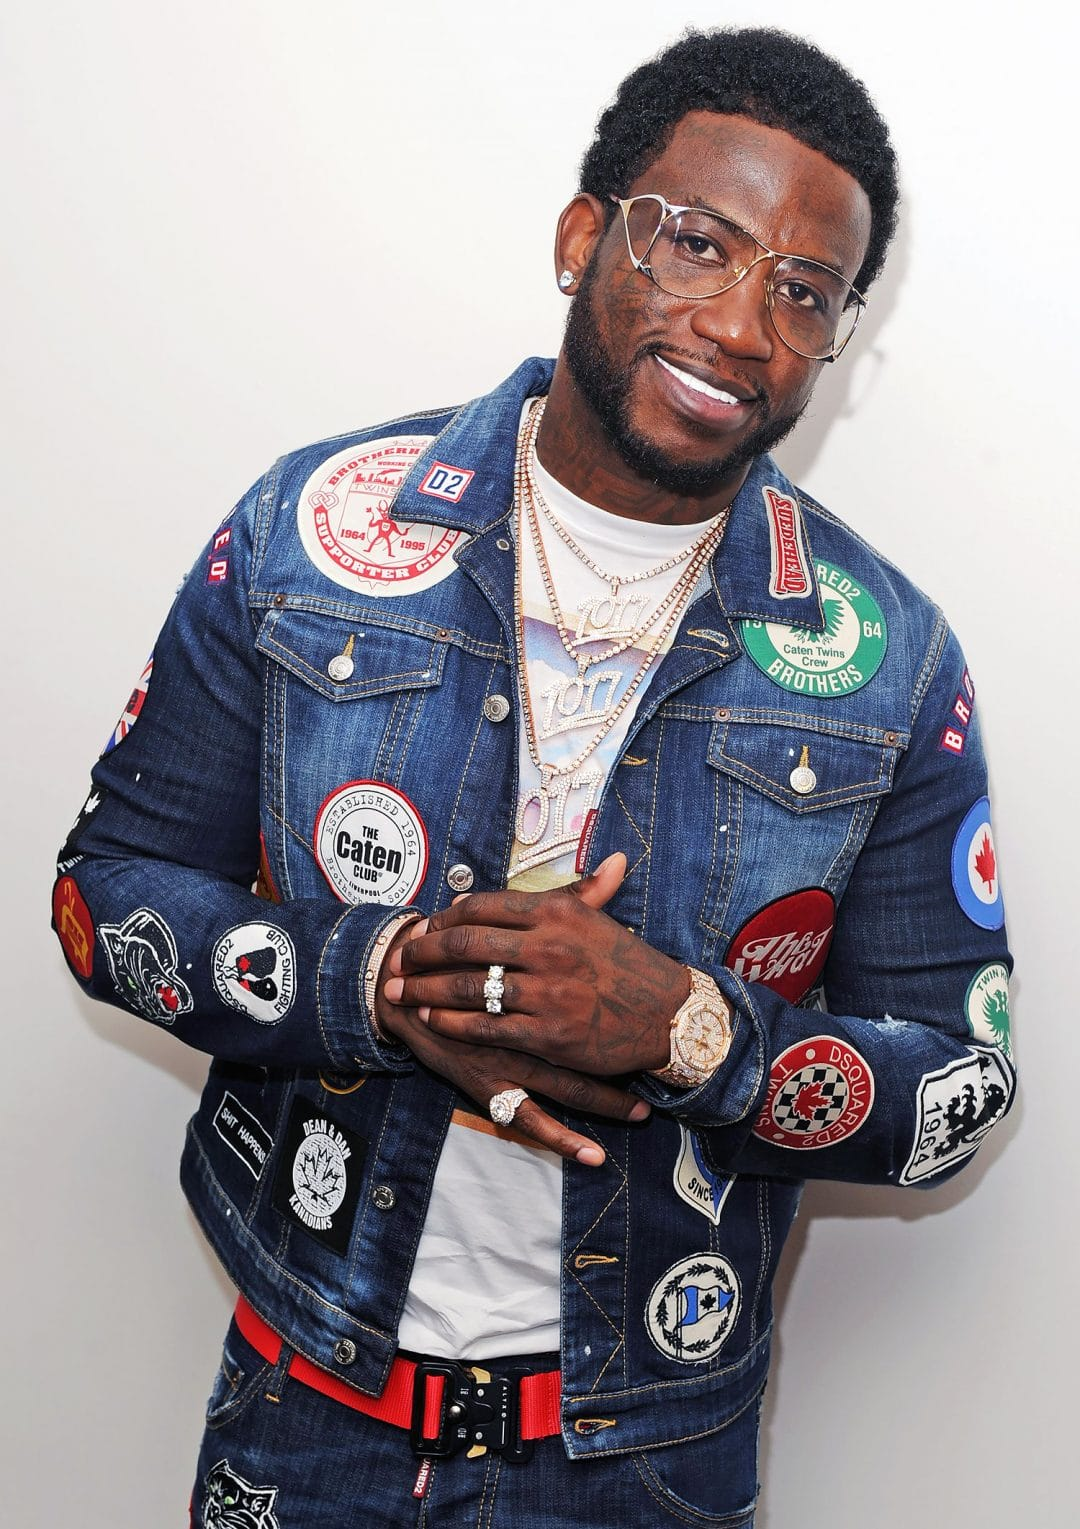 Gucci Mane visits radio station 99JAMZ, Fort Lauderdale, USA - 14 Mar 2017